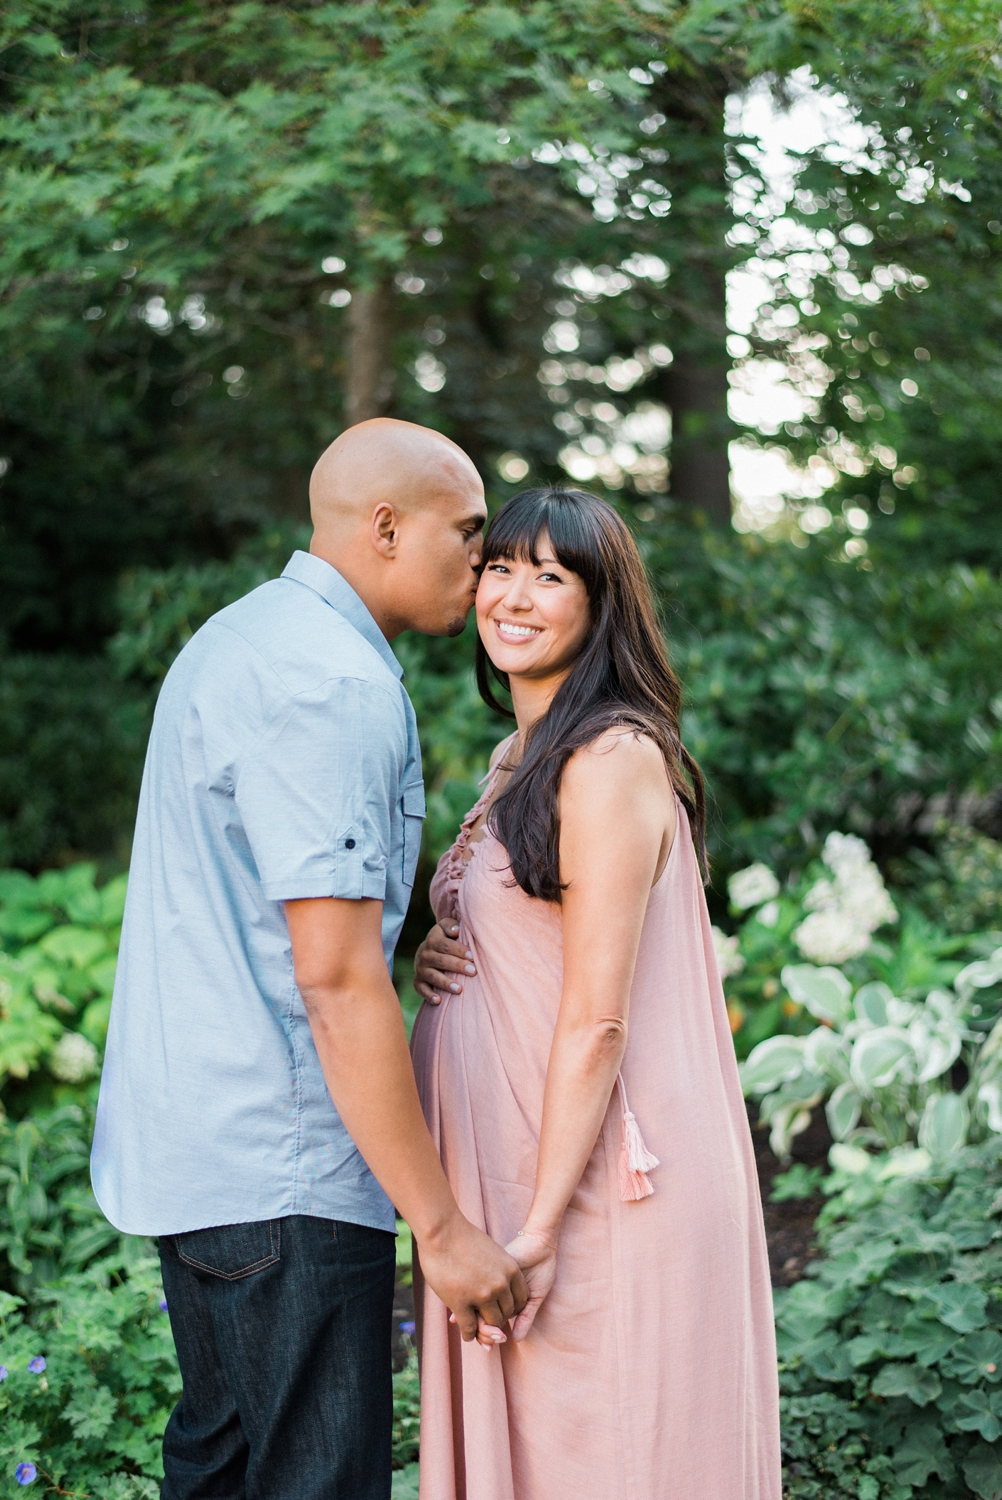 portland-maternity-photography-pittock-mansion-shelley-marie-photo-036_cr.jpg